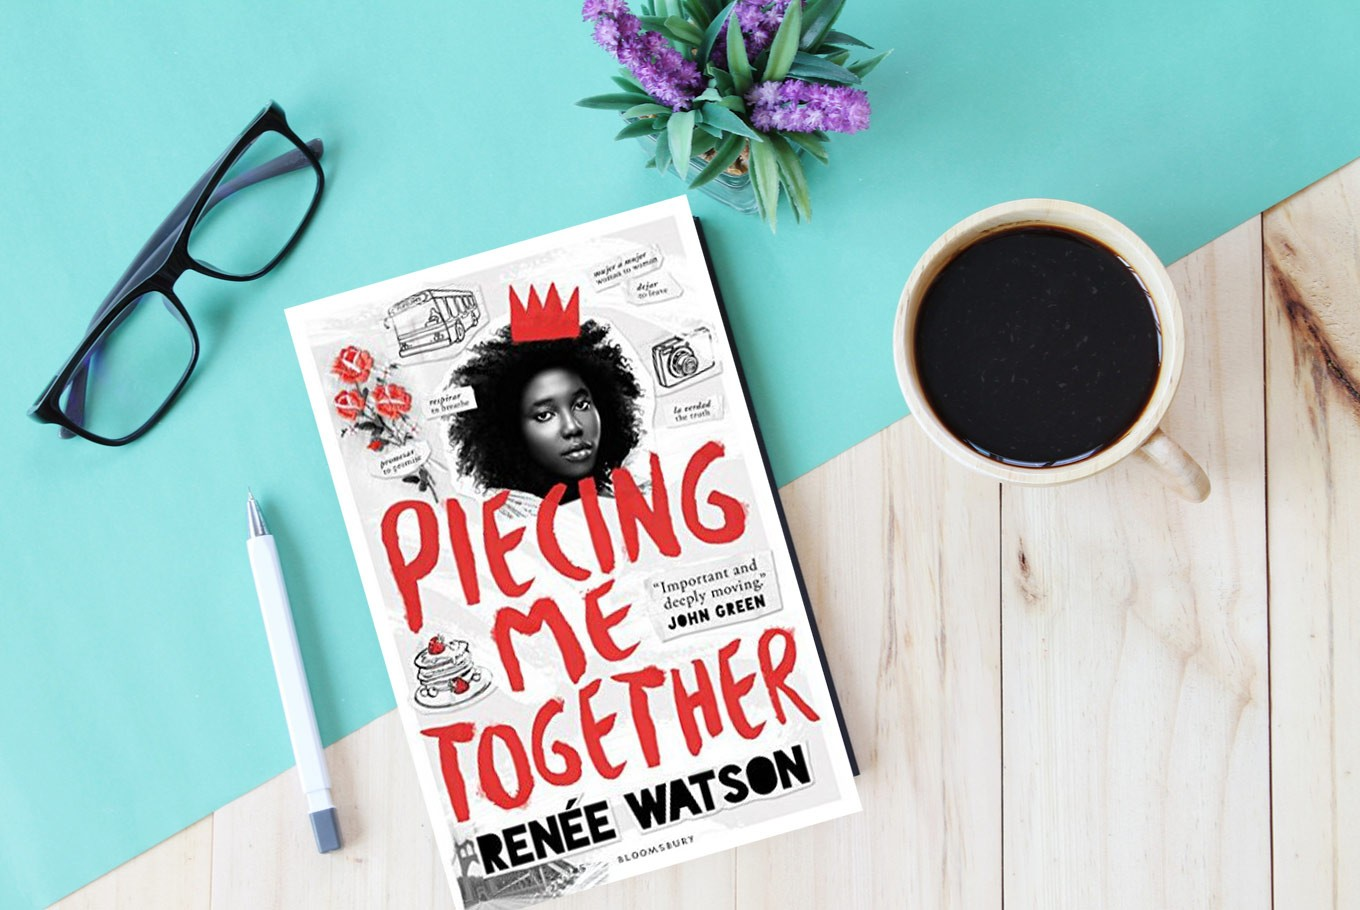 Book Review: 'Piecing me together', an important take on racism